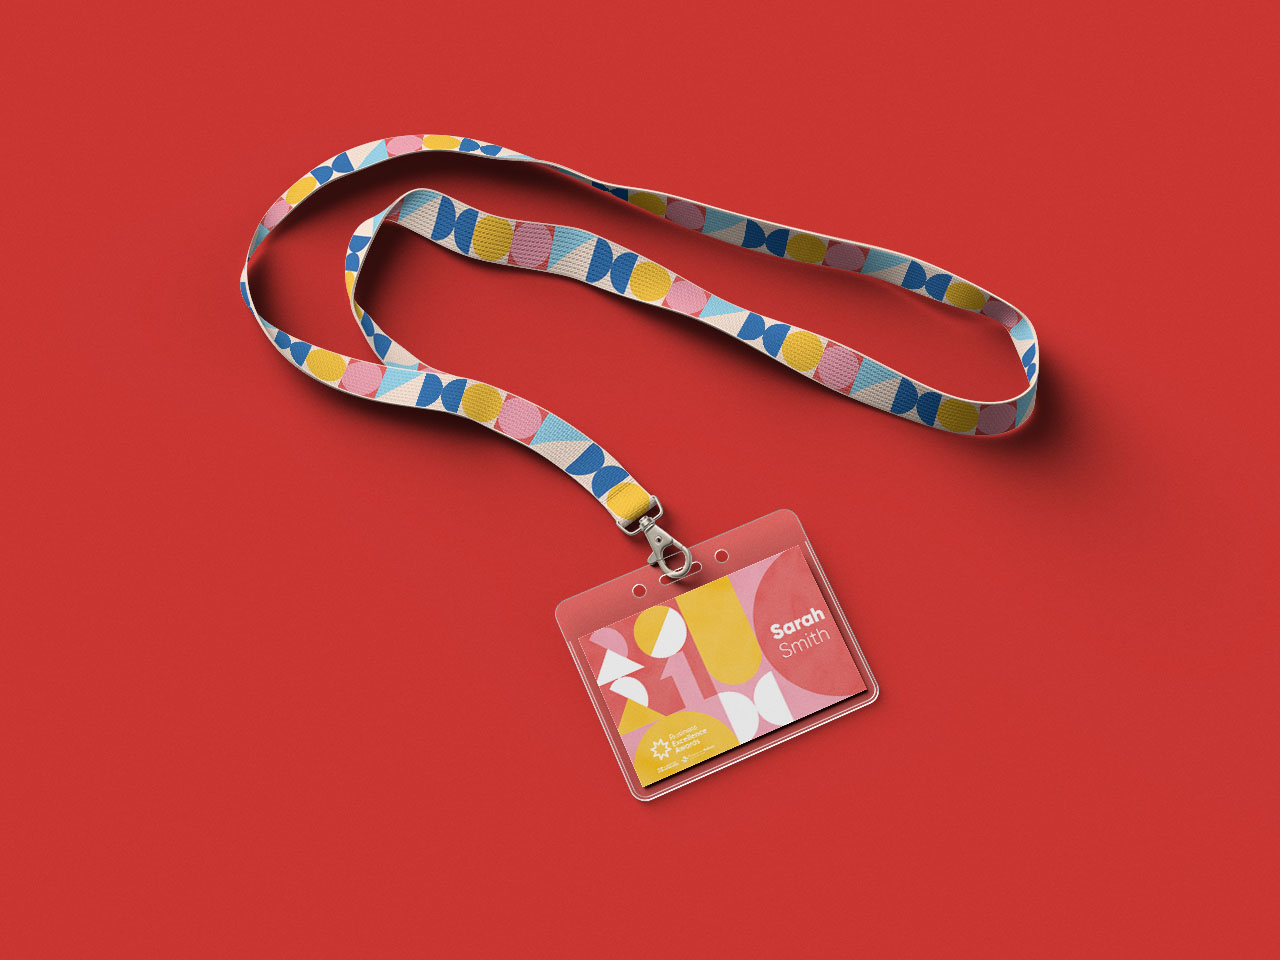 Business excellence awards lanyard